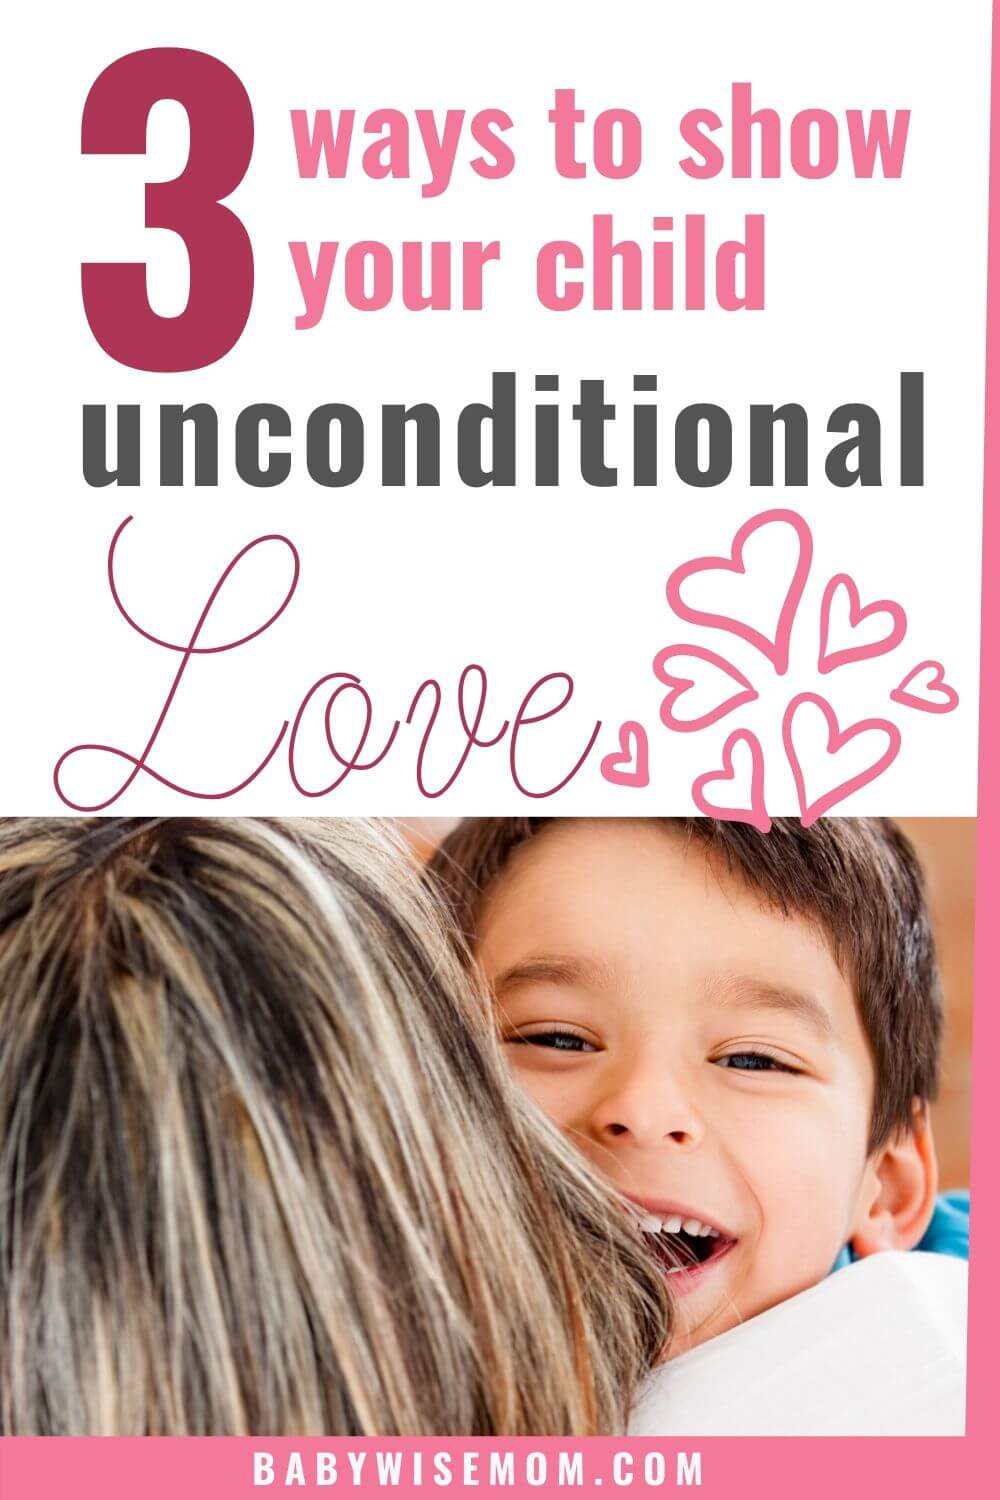 3 ways to show unconditional love to your child pinnable image